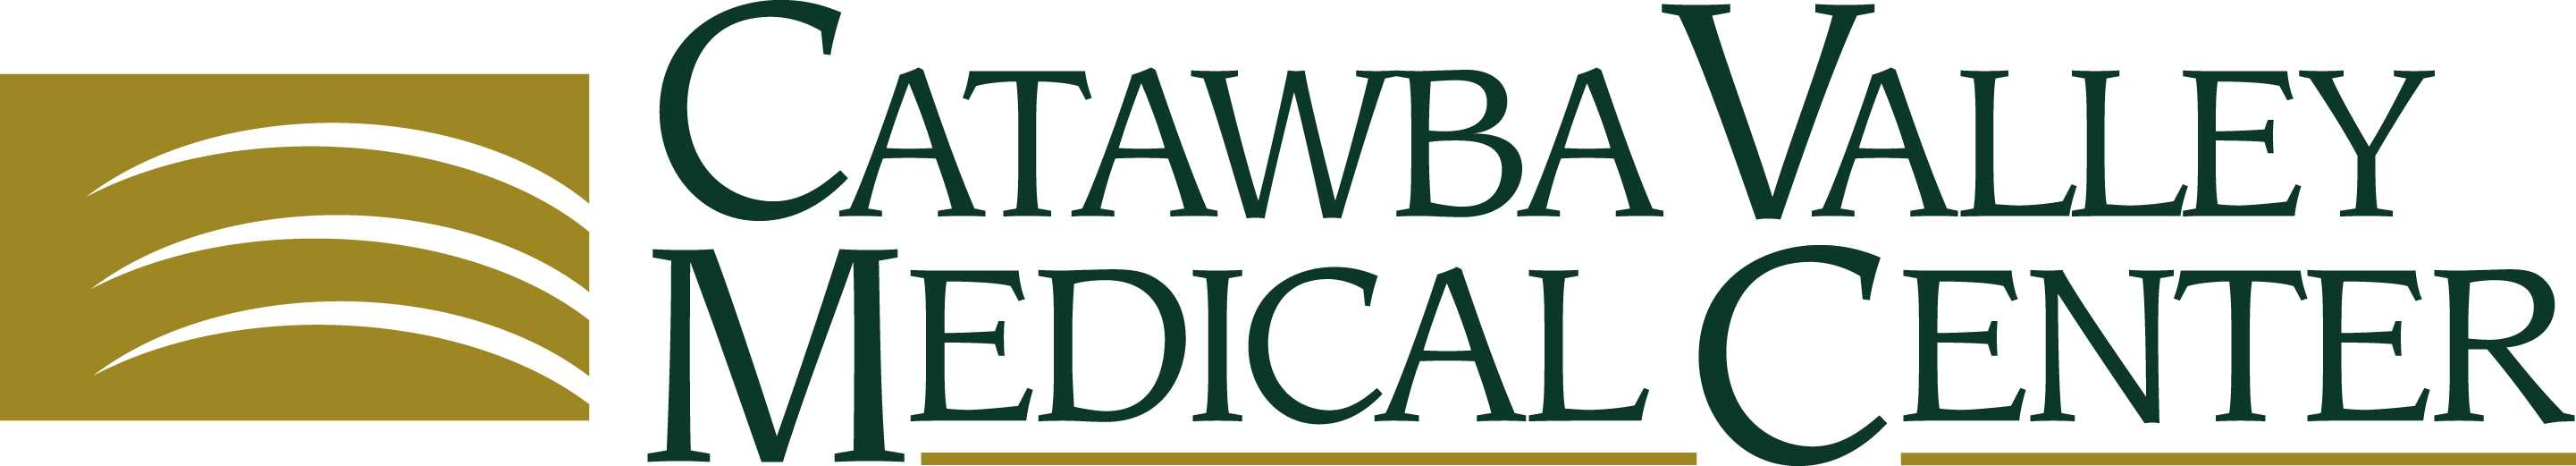 Catawba Valley Medical Center